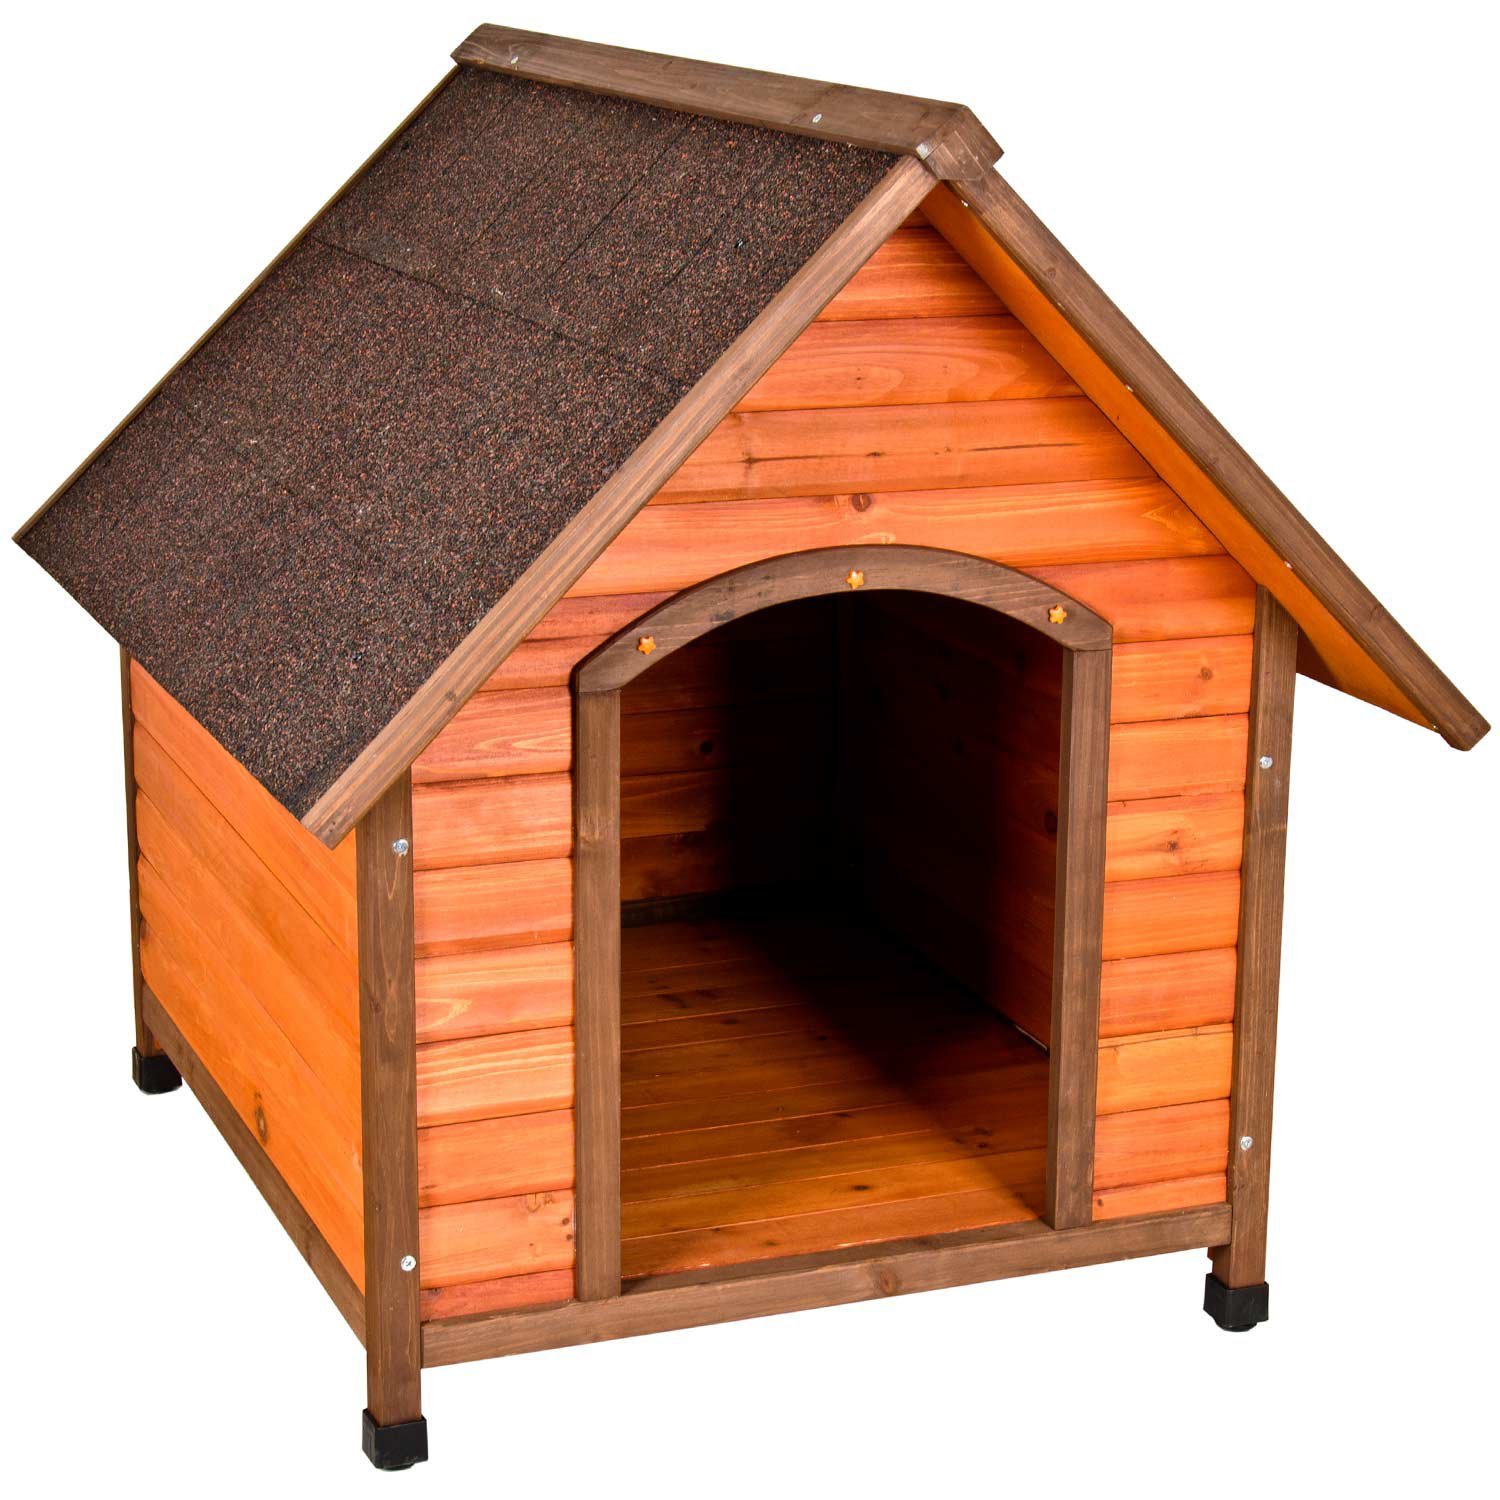 Small Dog Houses For Inside